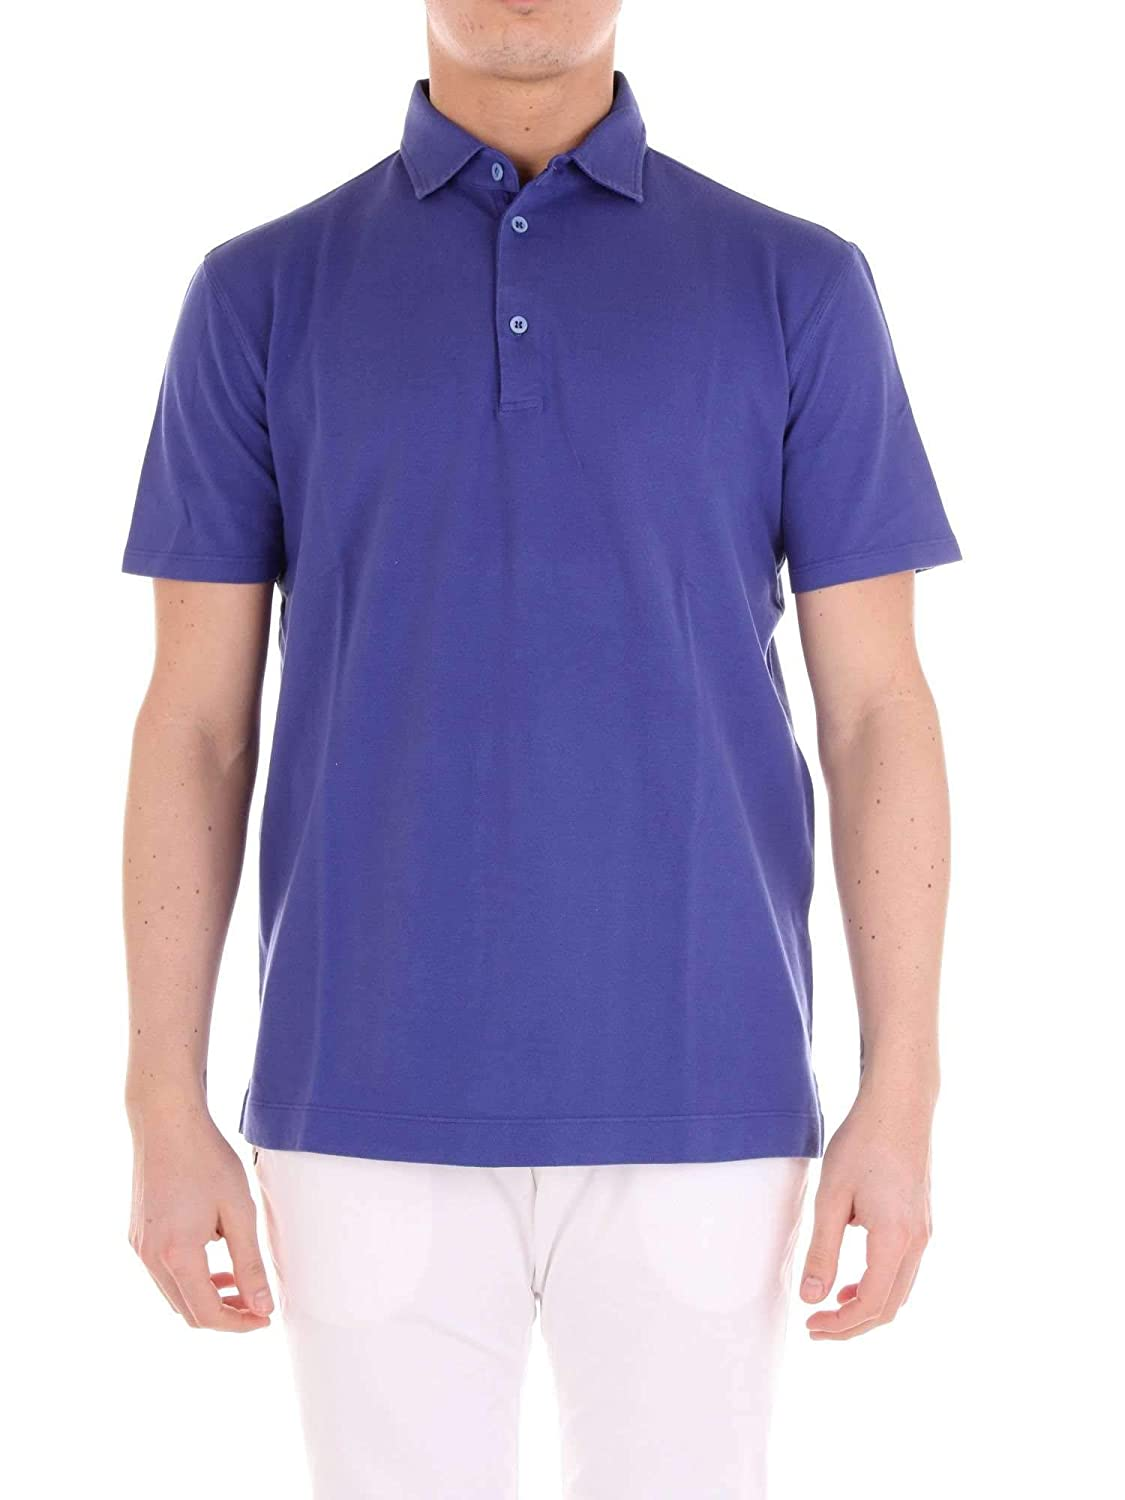 factory authentic f5ac6 cb1f3 CRUCIANI Men's Cujkpc304j Purple Cotton Polo Shirt at Amazon ...